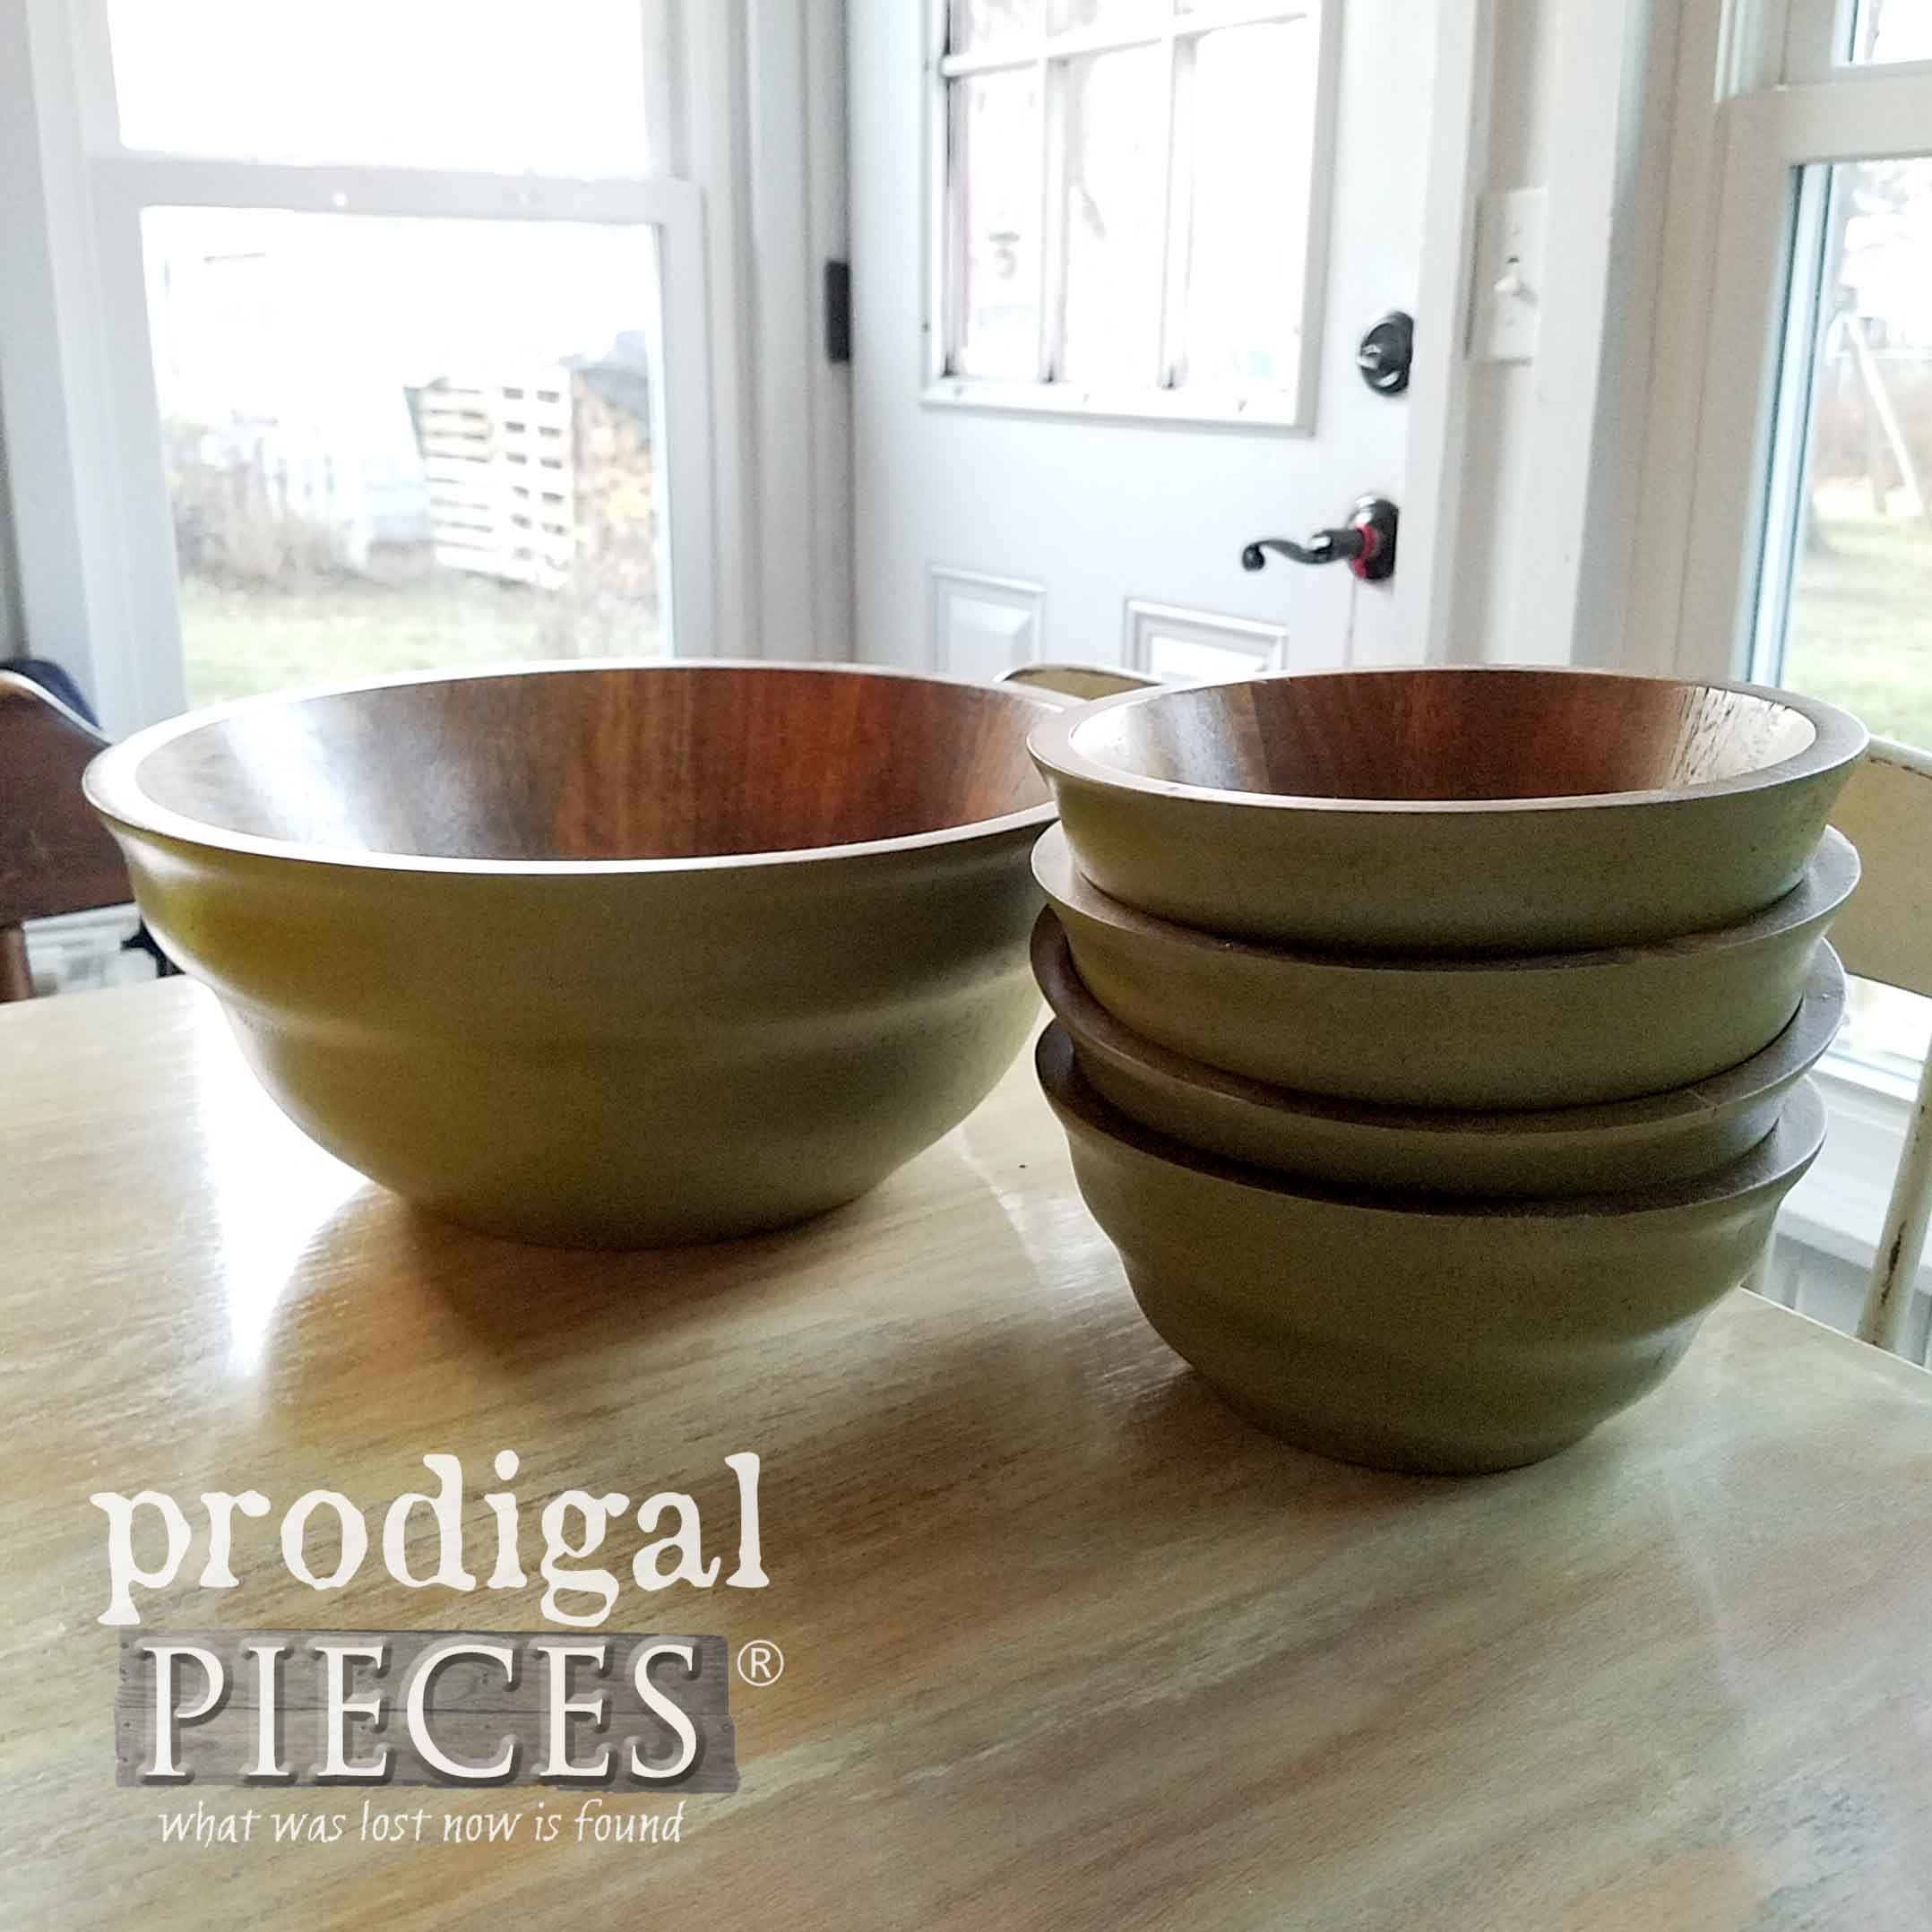 Set of Thrifted Wooden Salad Bowls Before Repurposing | prodigalpieces.com